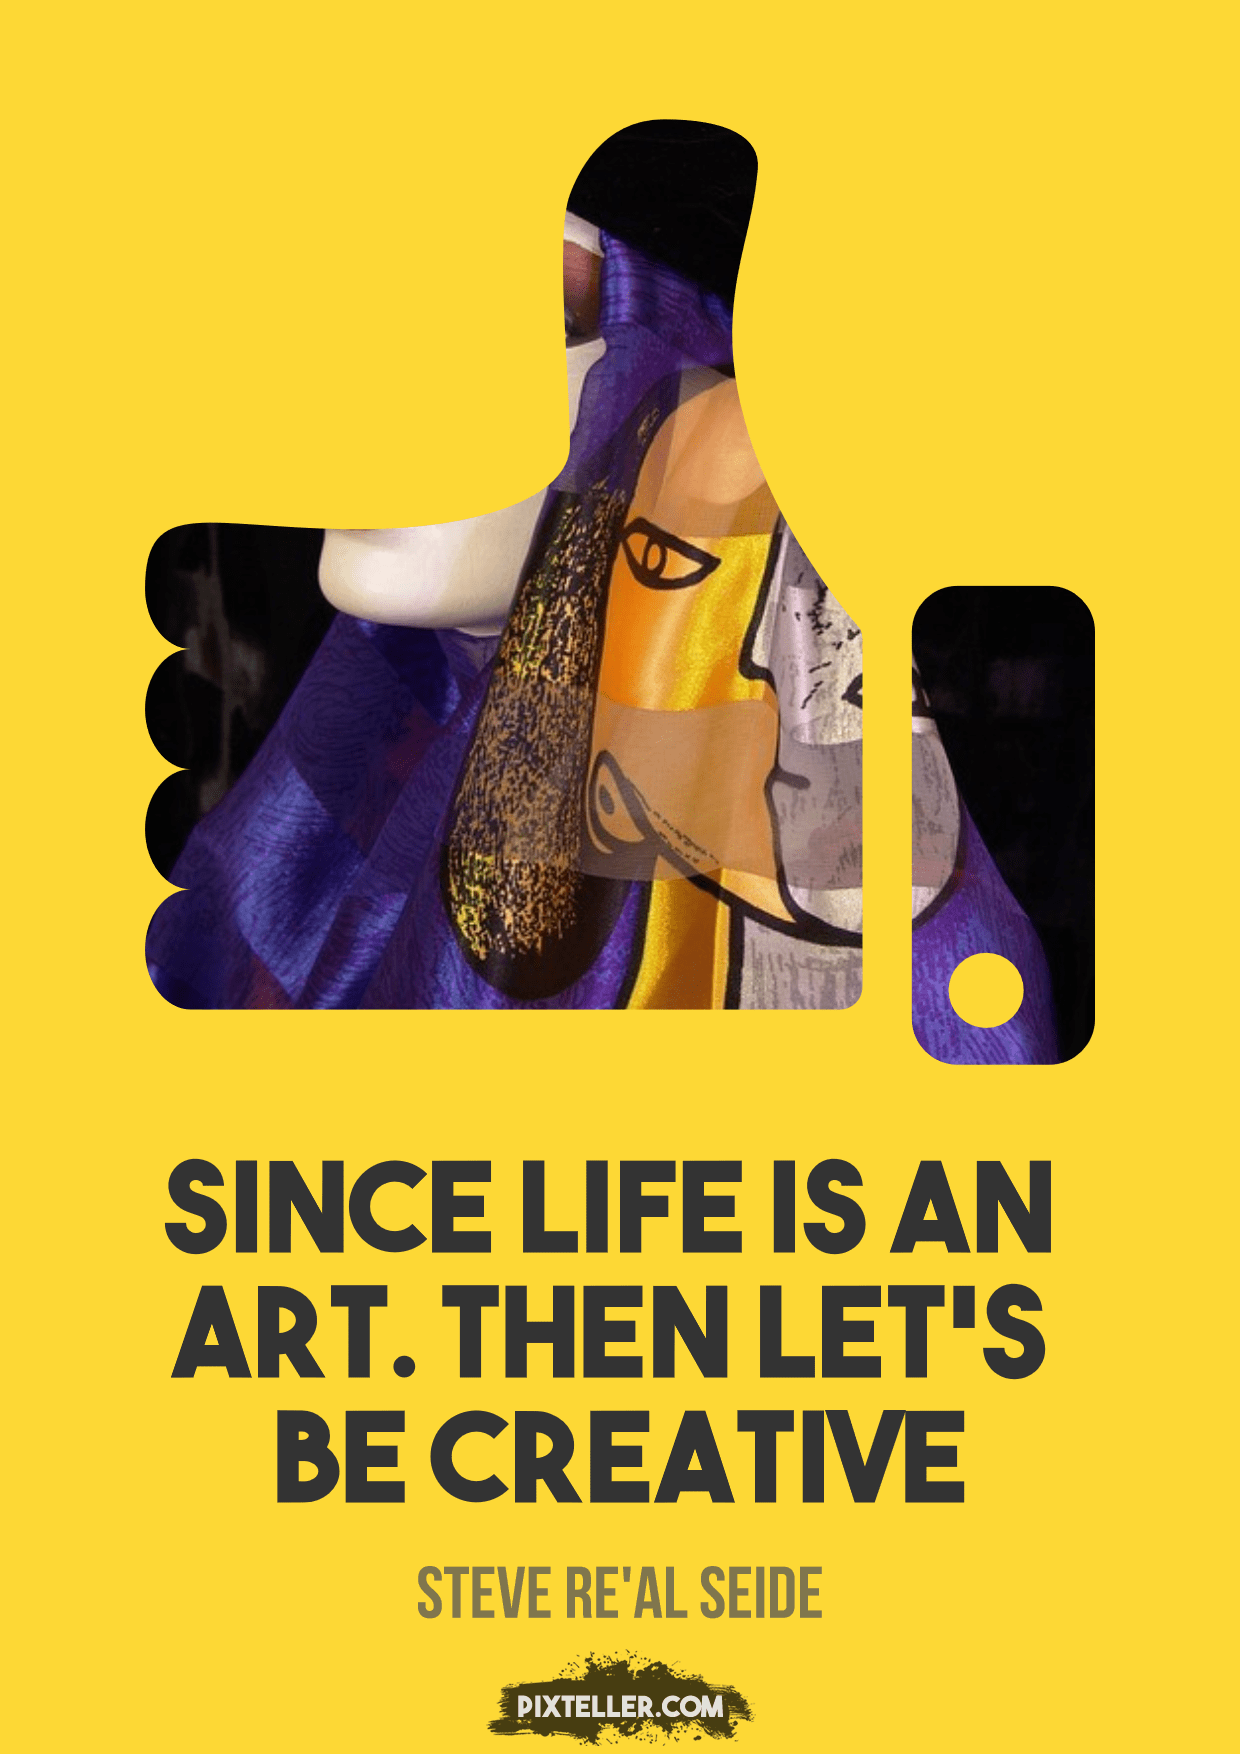 Poster,                Cartoon,                Font,                Advertising,                Illustration,                Luxury,                Text,                Quote,                Simple,                Black,                Yellow,                 Free Image